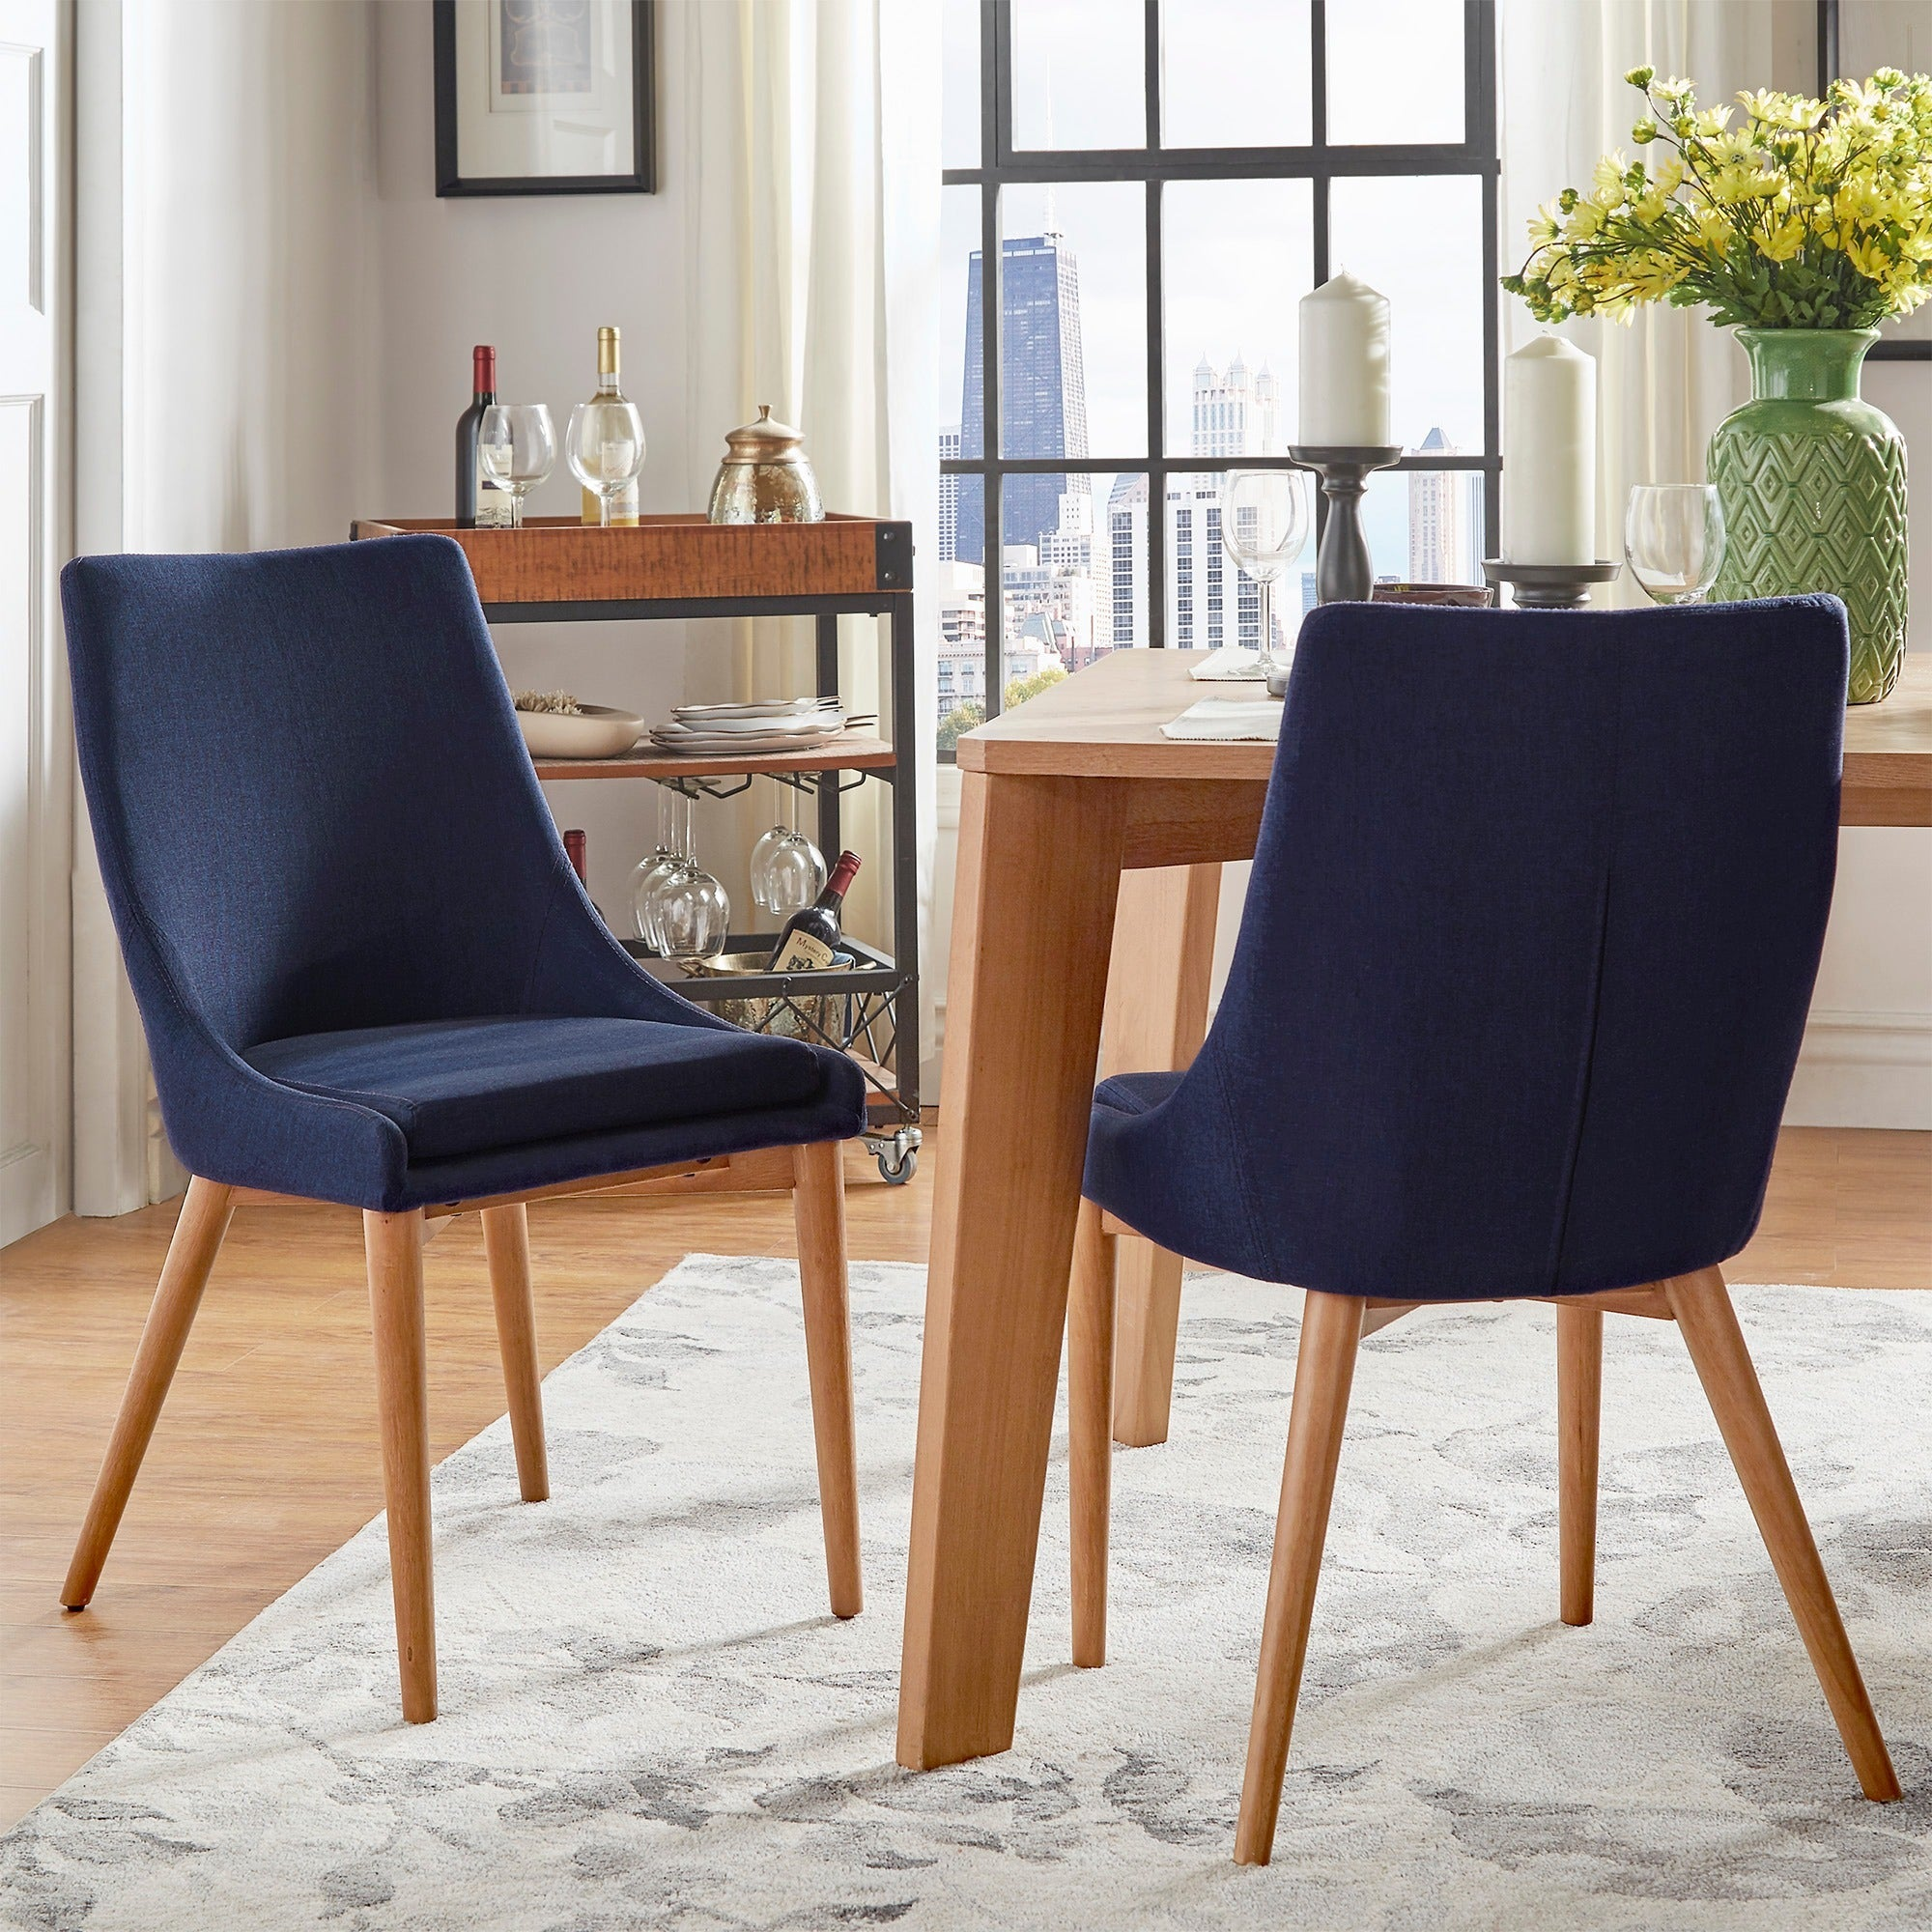 Buy Kitchen u0026 Dining Room Chairs Online